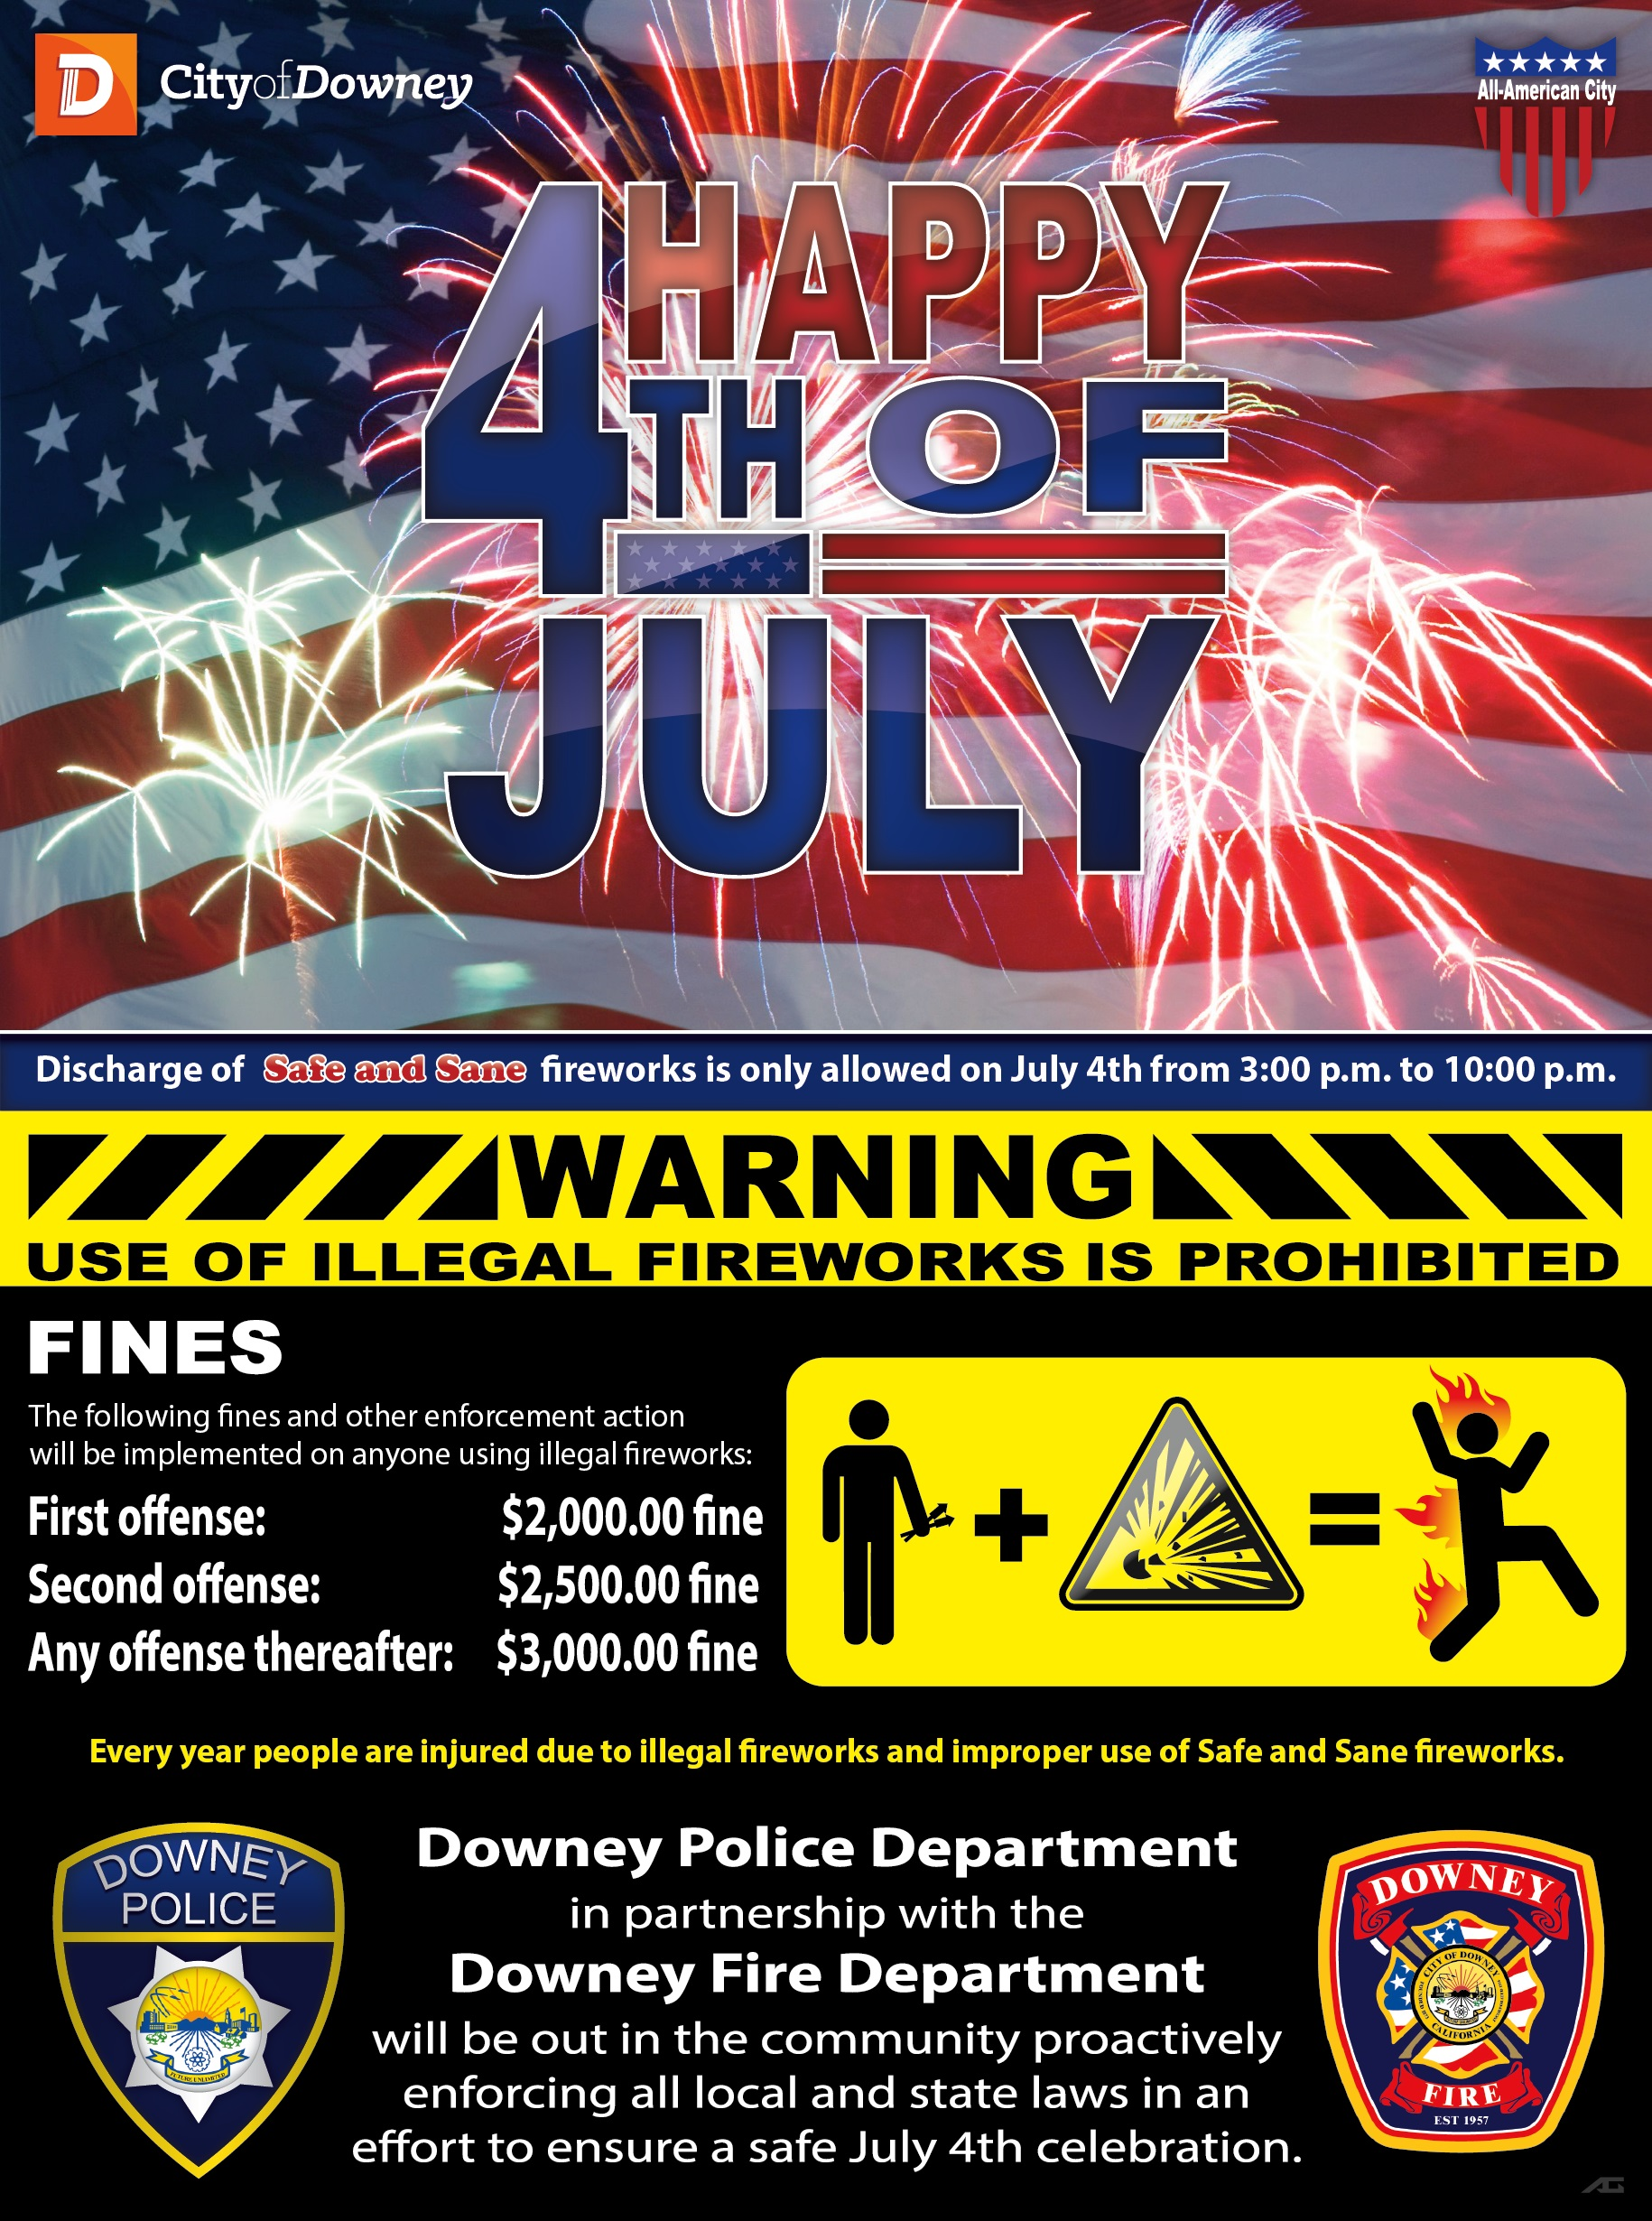 Downey Reminds Residents that Illegal Fireworks are Prohibited